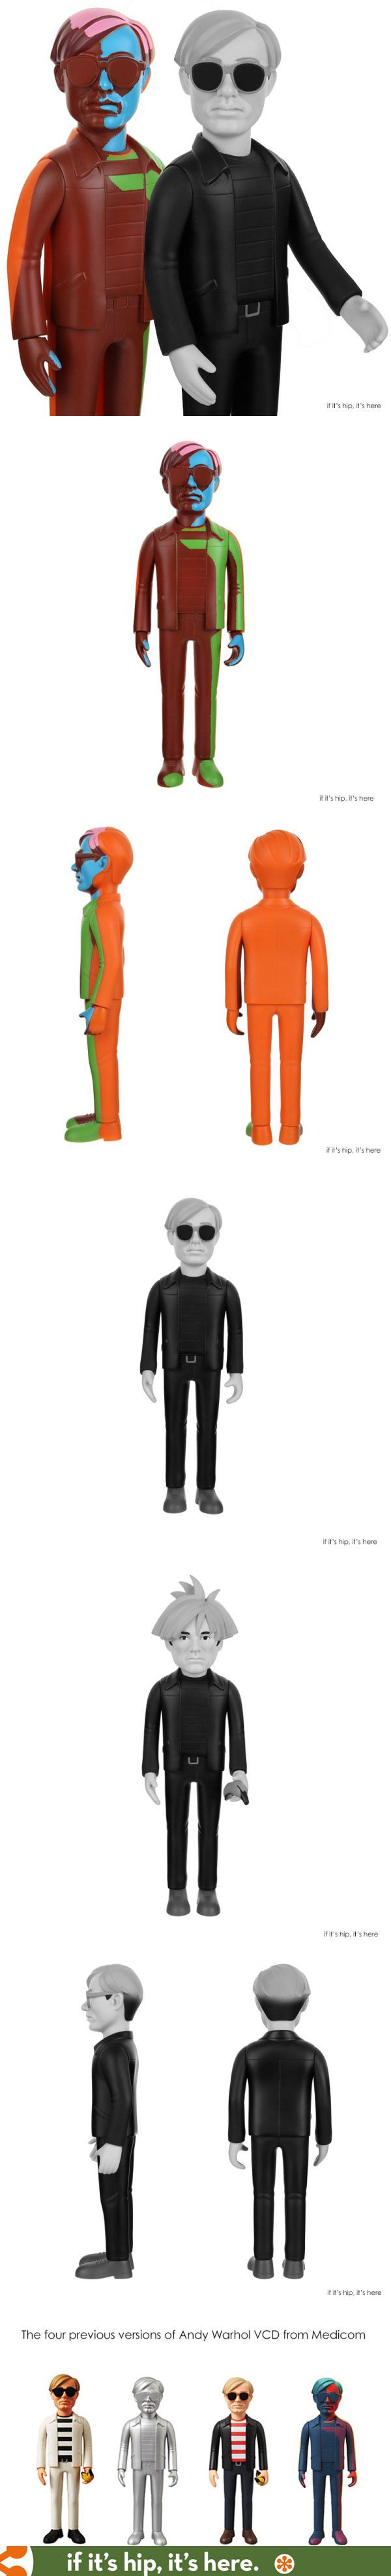 Two new variants of the Andy Warhol Vinyl Collectible Doll are now available.